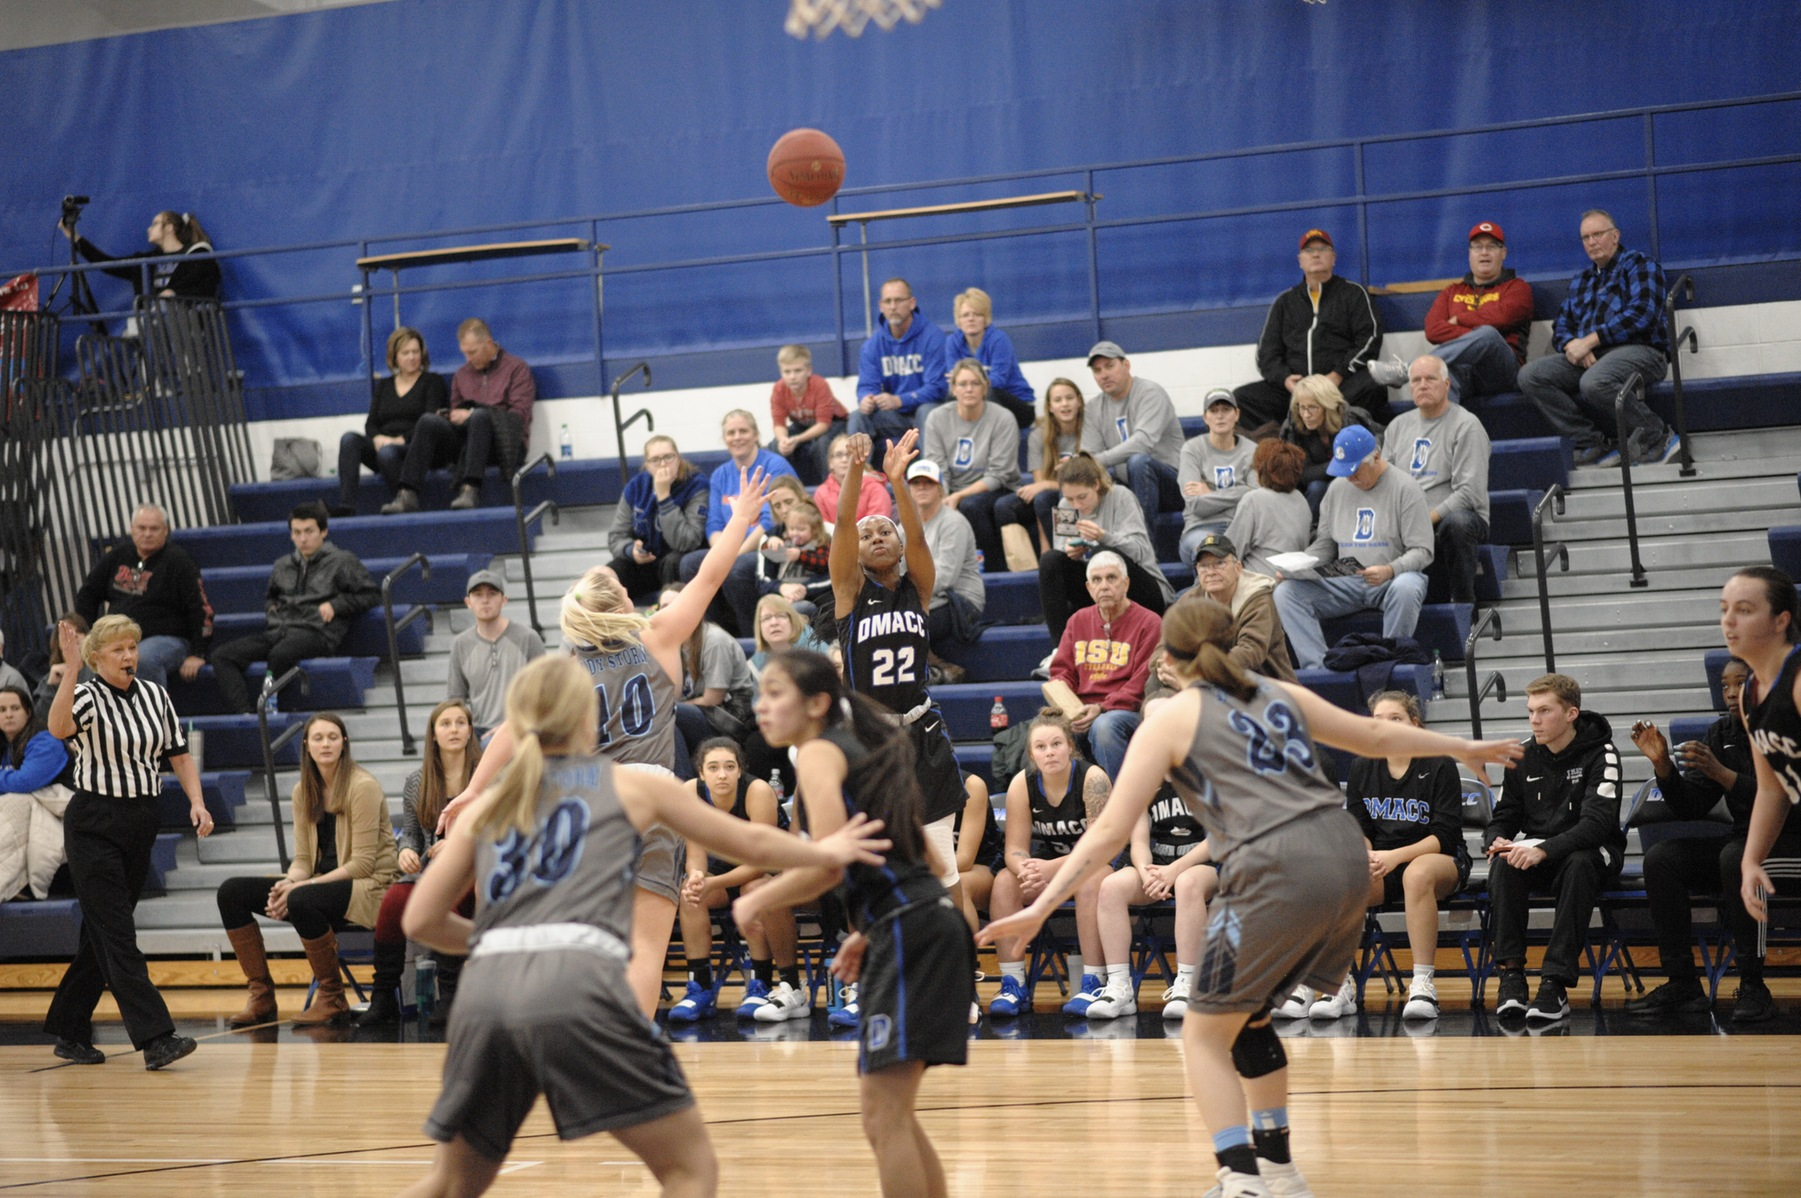 DMACC women's basketball team falls to KCC, 66-37